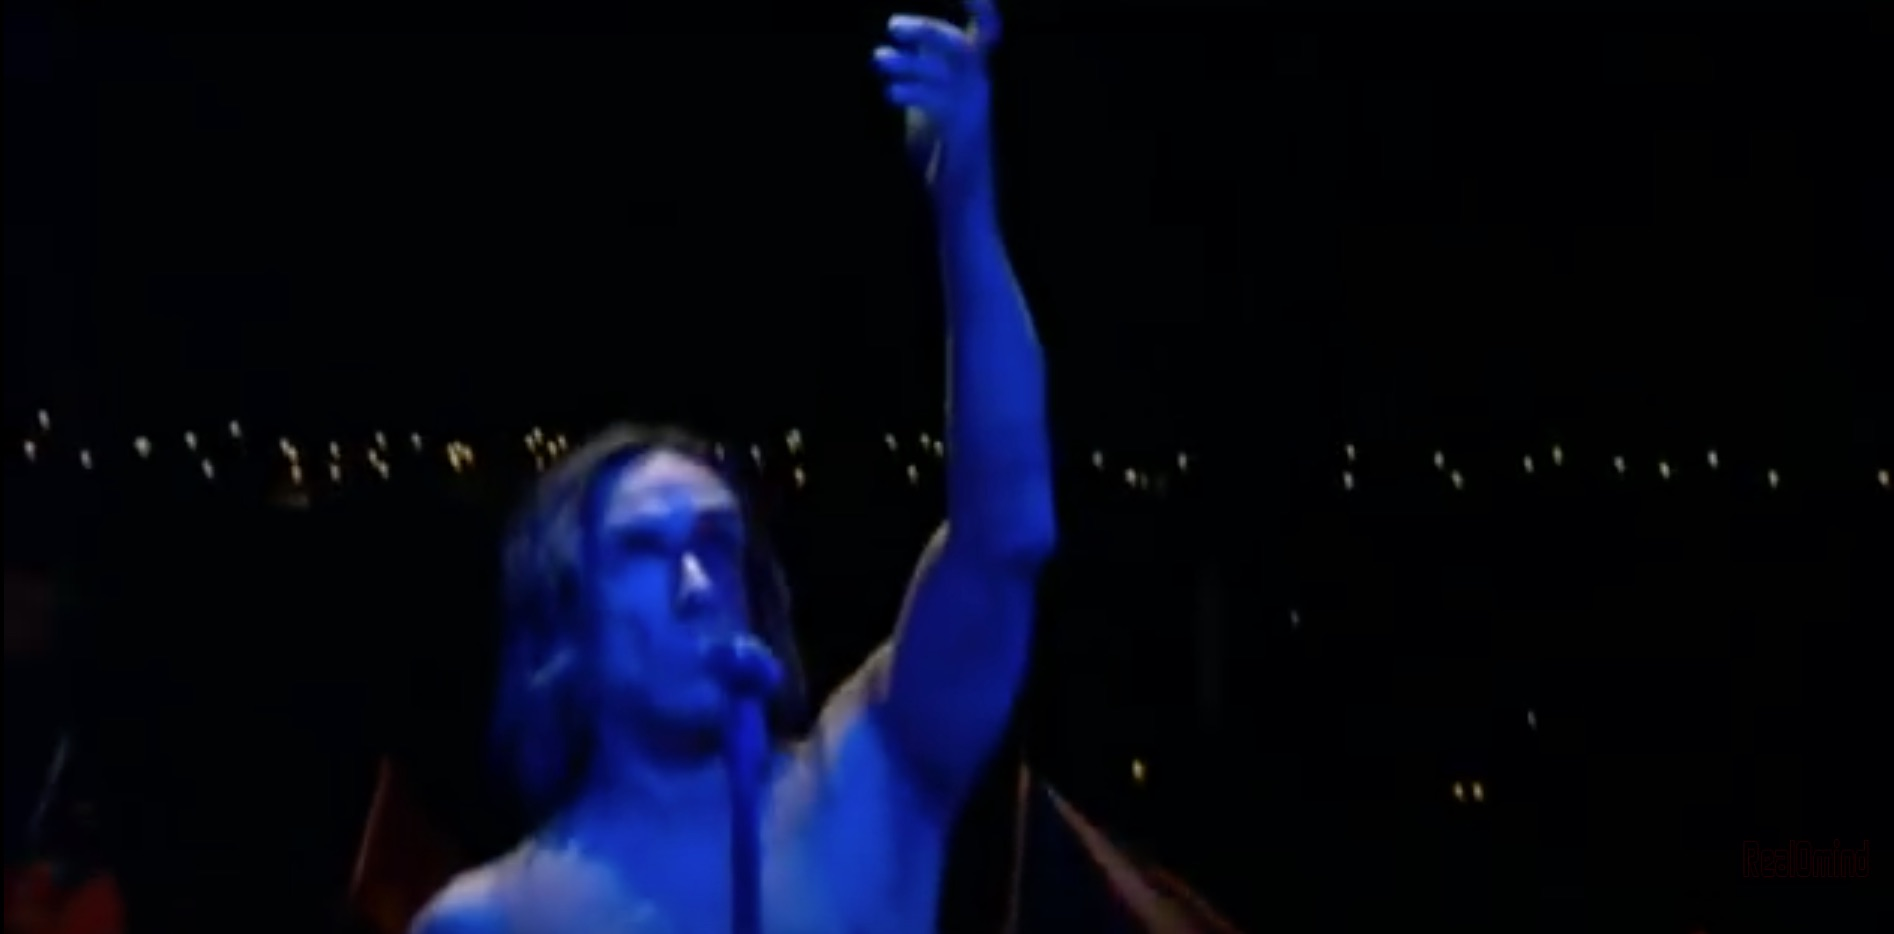 _45__Iggy_and_The_Stooges_at_Glastonbury_2007_-_YouTube 4.jpg